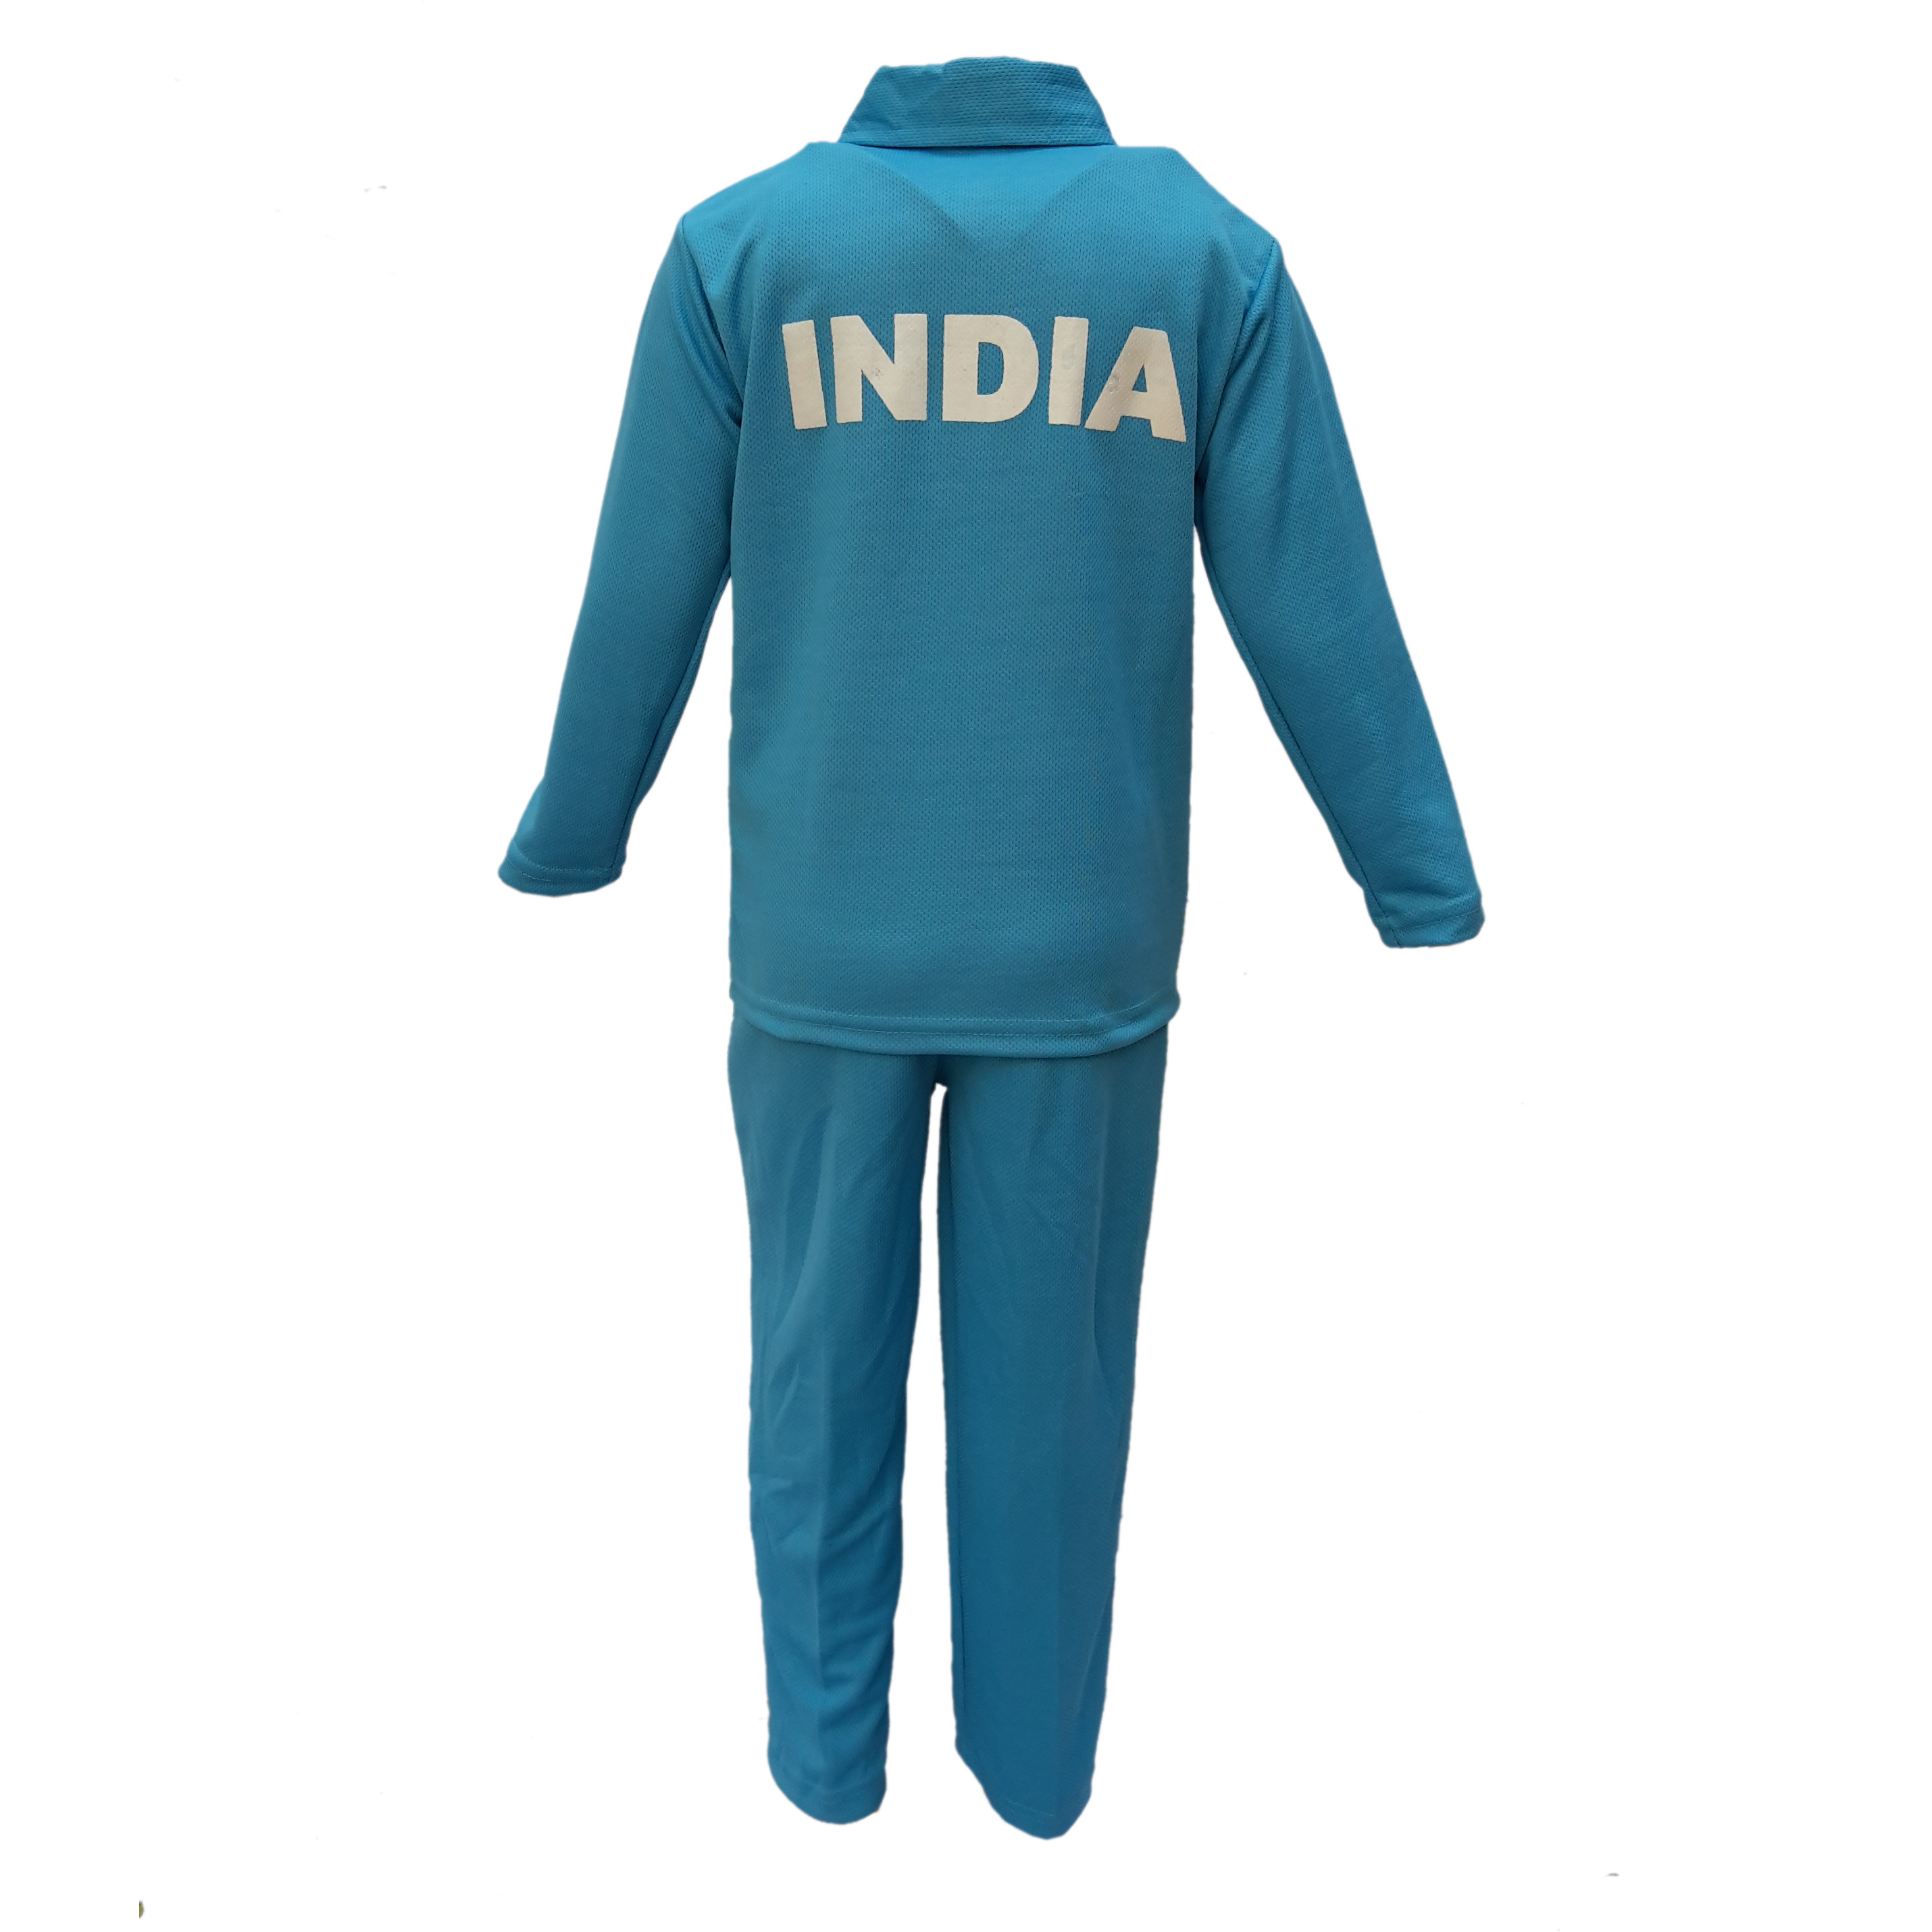 KFD India Cricket Team fancy dress for kids,National Hero Costume for Independence Day/Republic Day/Annual function/Theme Party/Competition/Stage Shows Dress